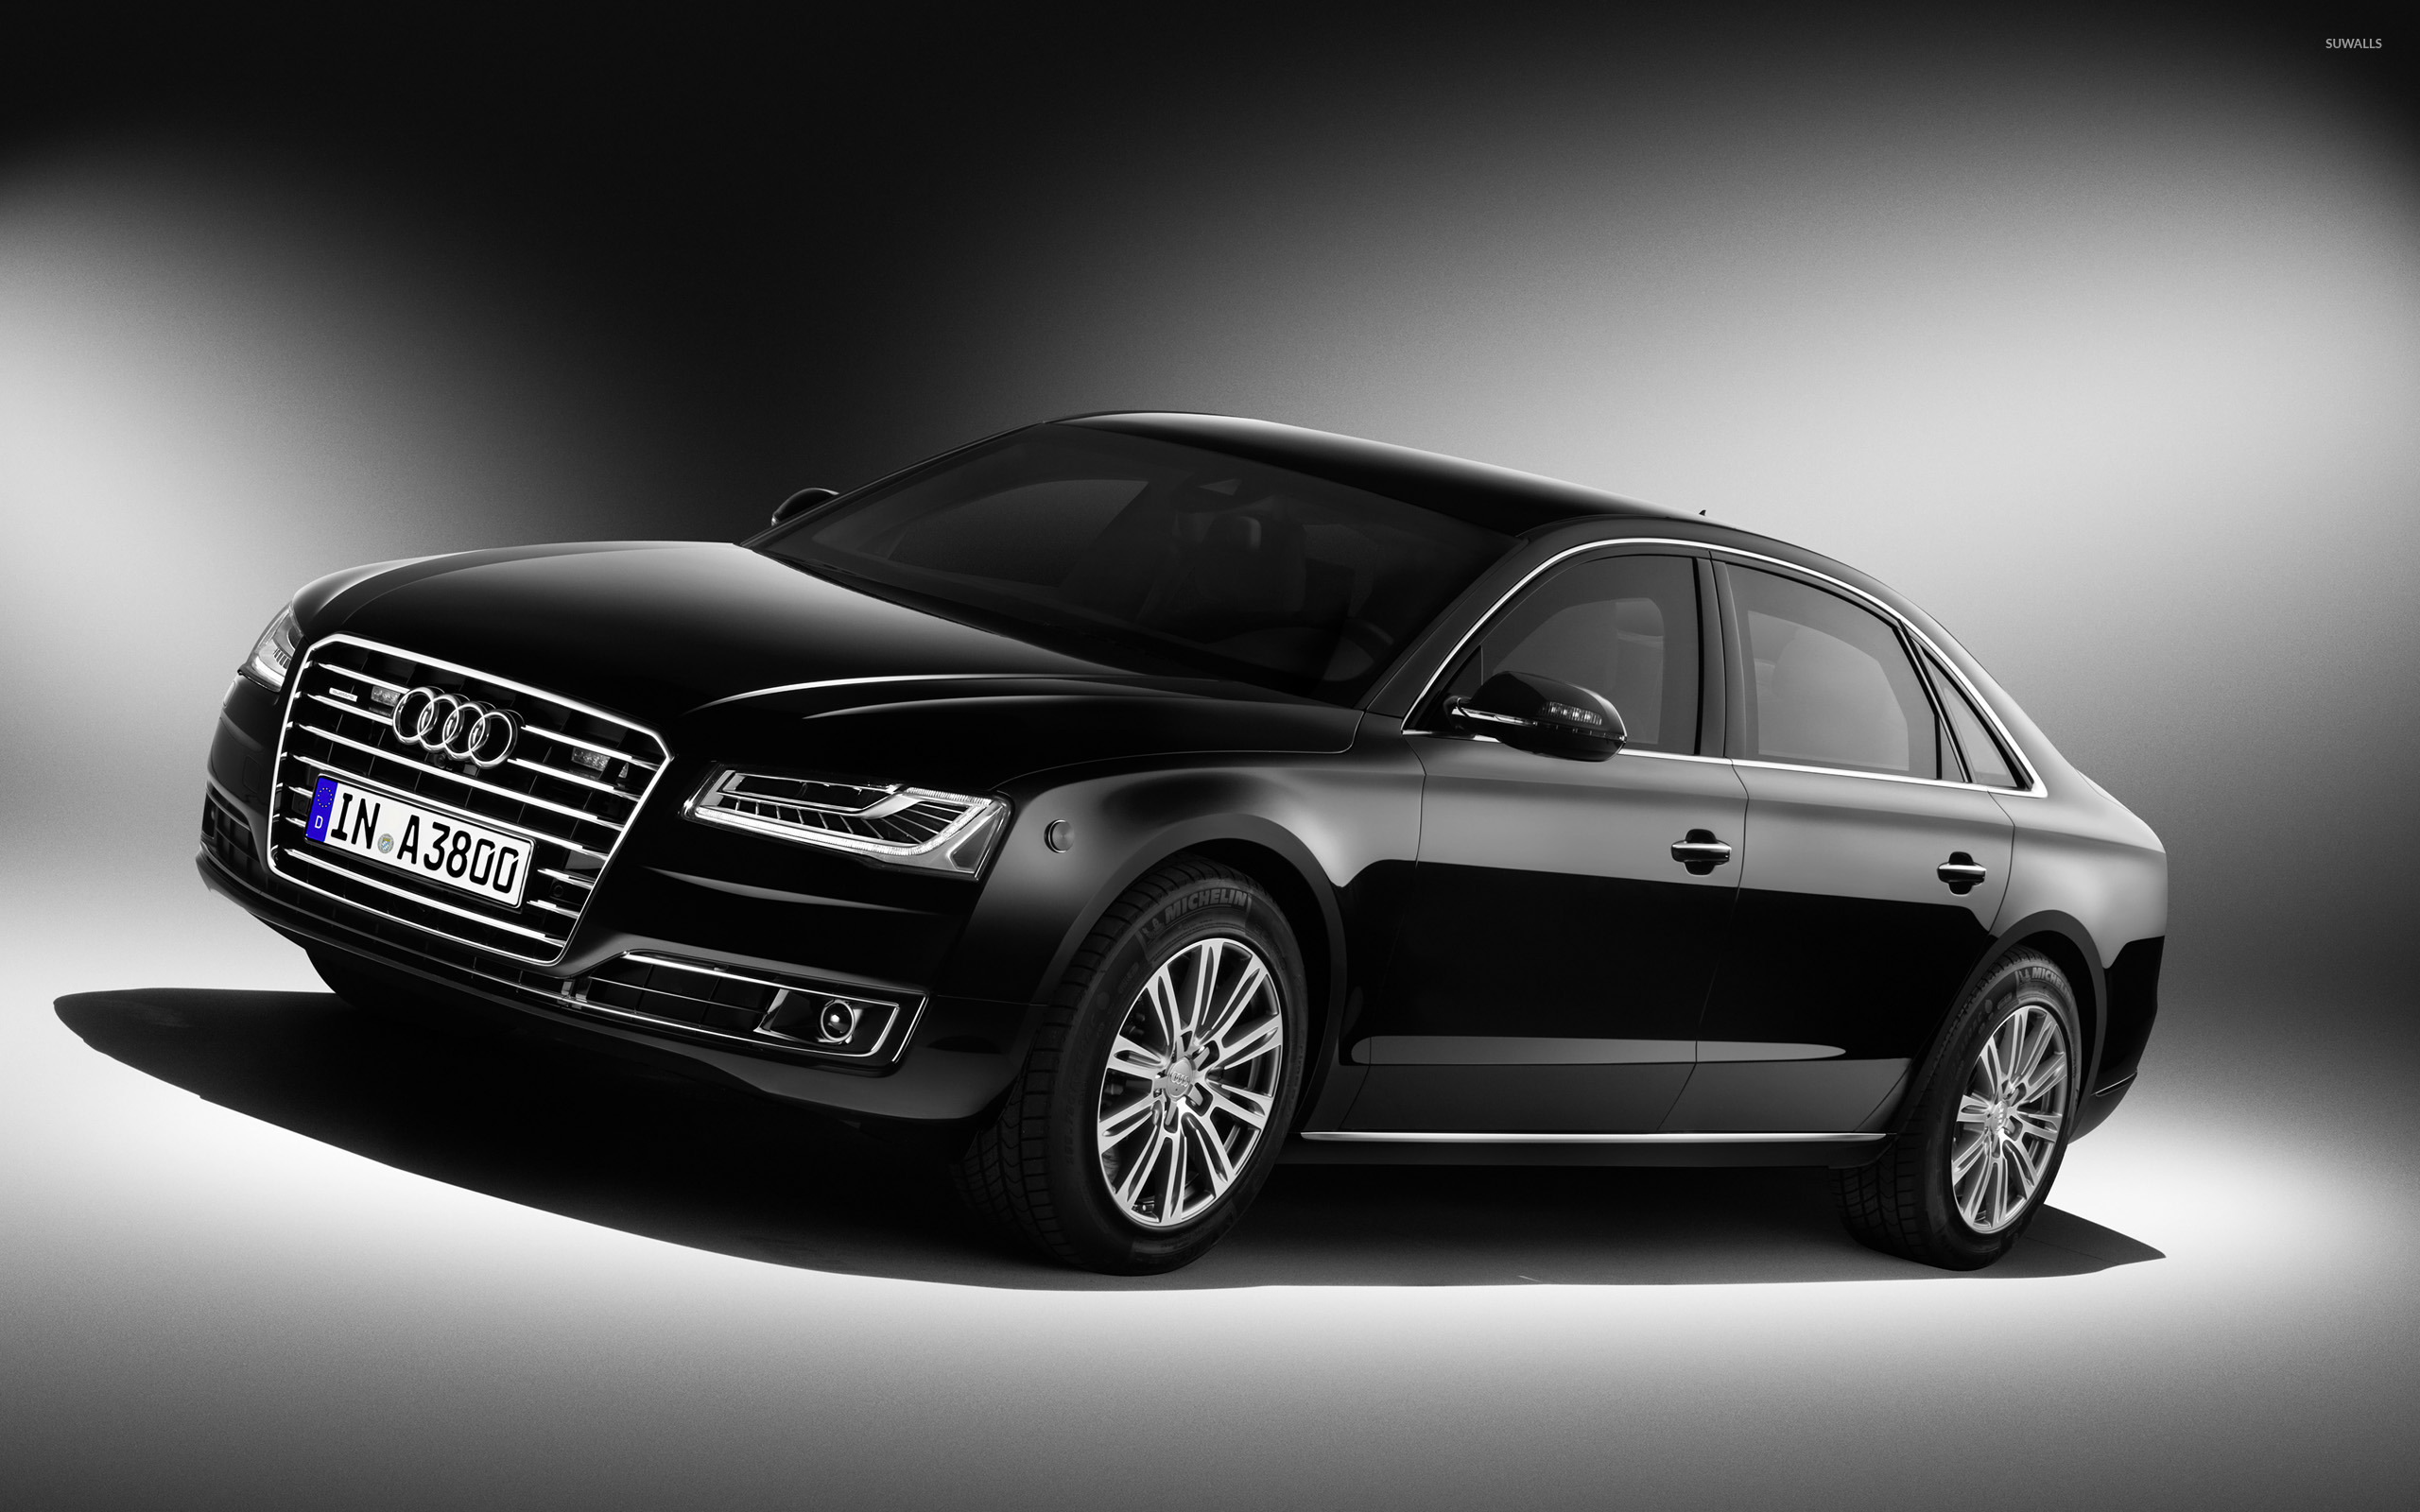 2014 Audi A8 L W12 quattro 8 wallpaper Car wallpapers